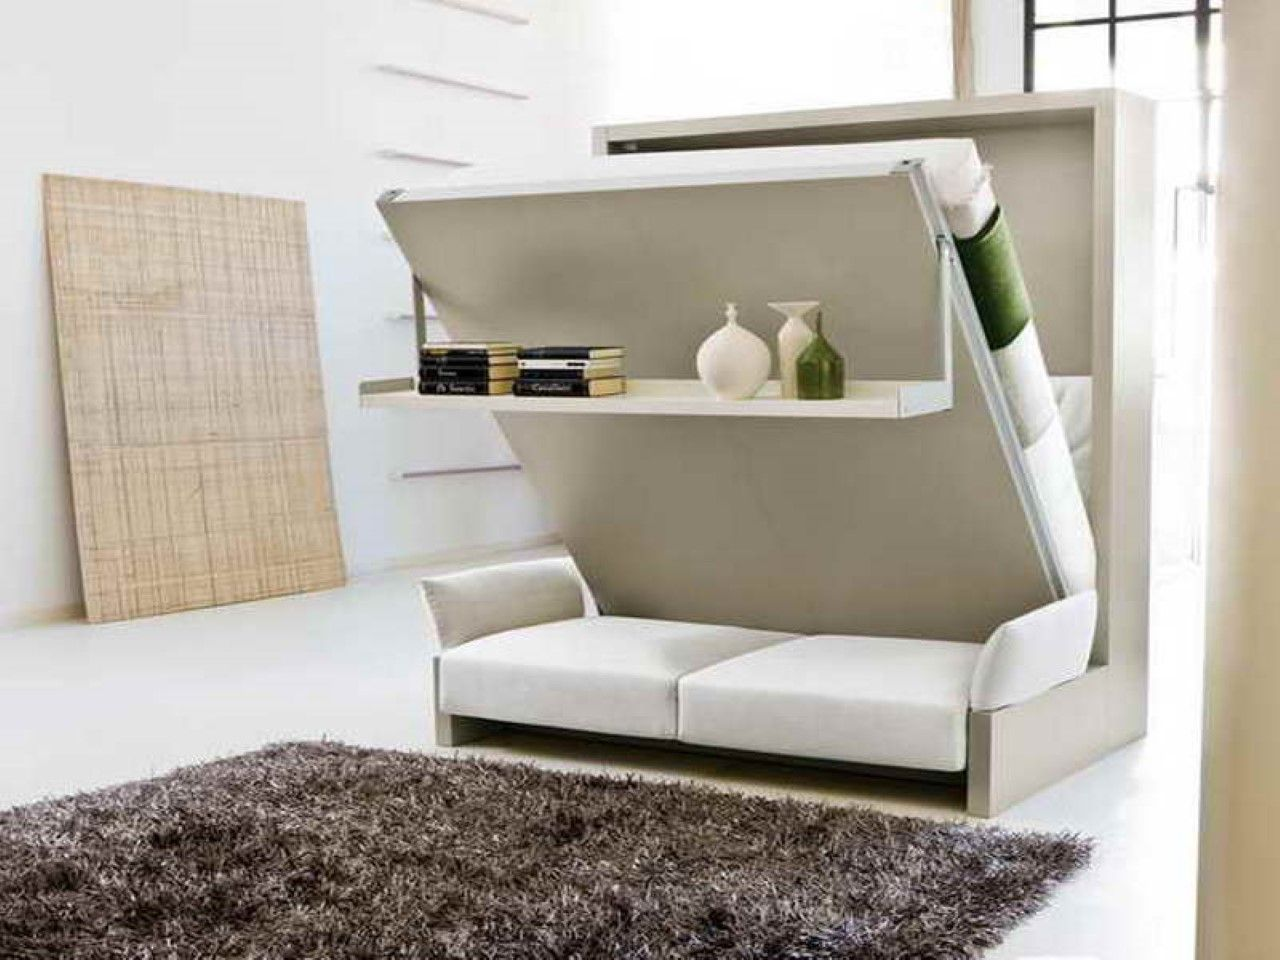 Beautiful murphy bed desk plus white leather loveseat design idea beautiful murphy bed desk plus white leather loveseat design idea and modern fluffy rug amipublicfo Gallery